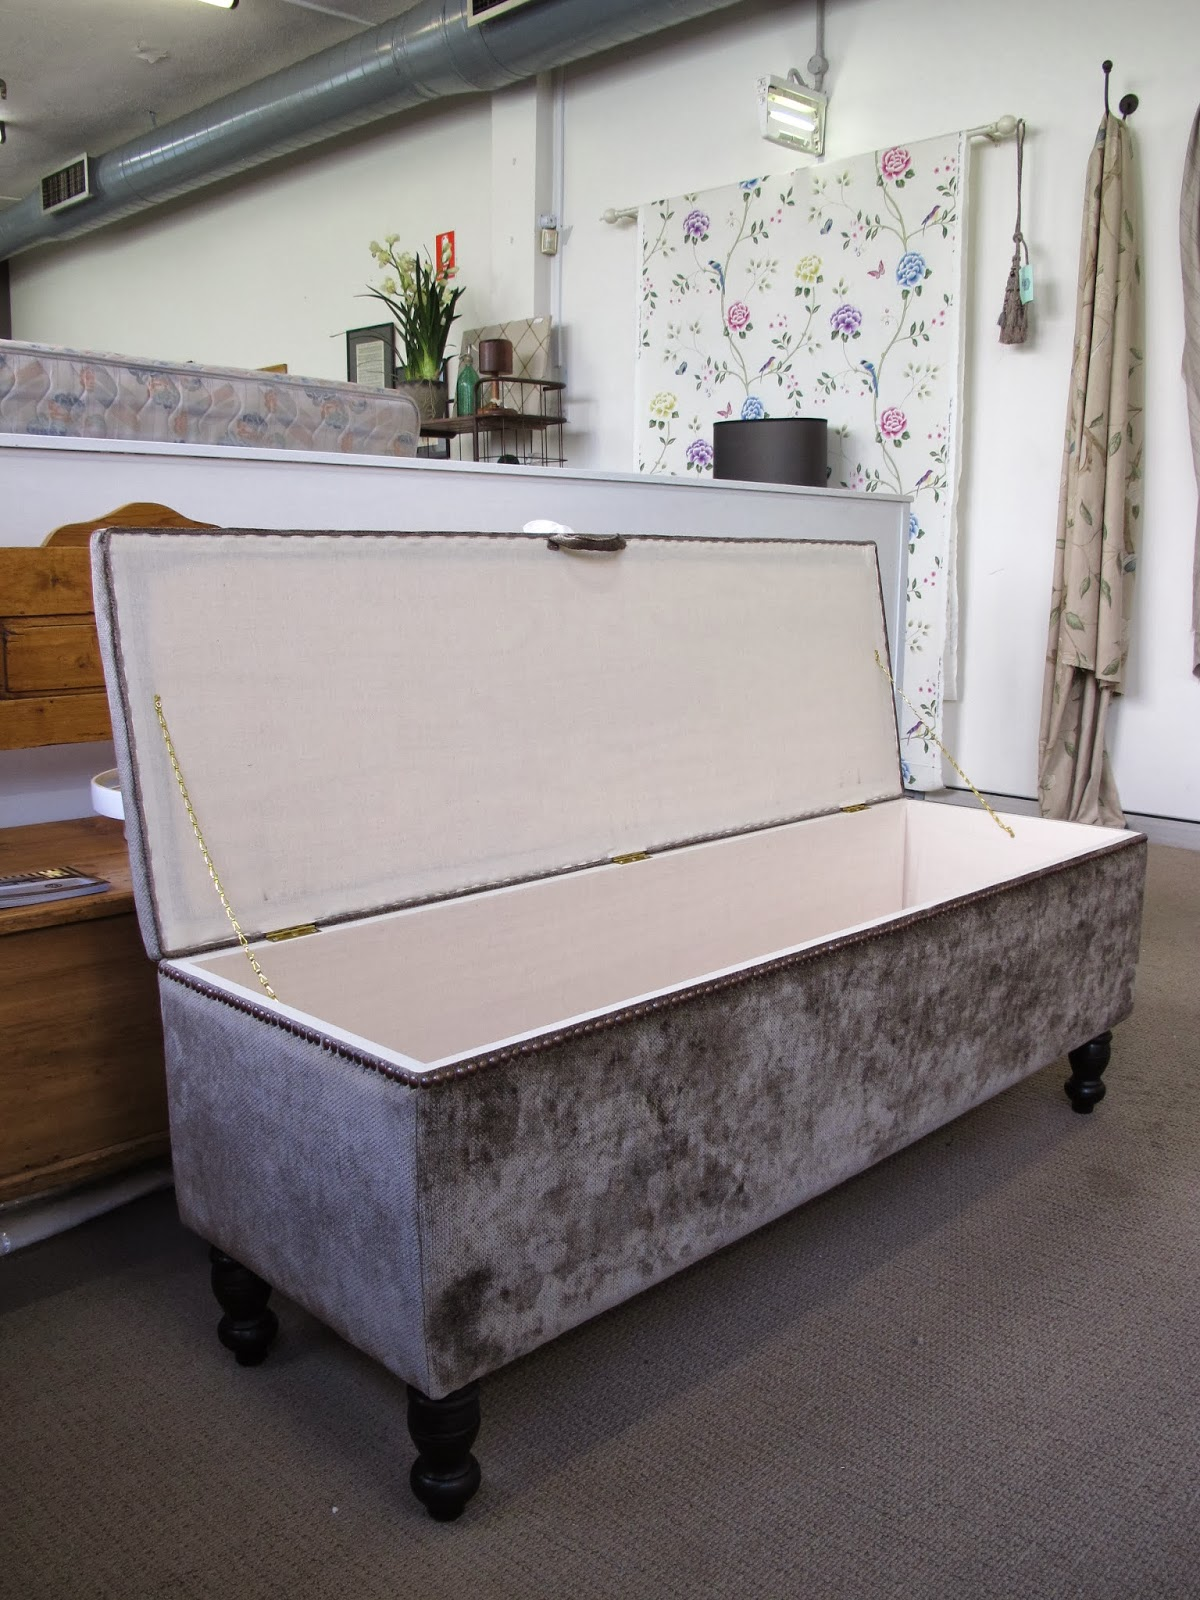 Coordinate your end of bed storage box to match your upholstered bedhead, made to order you can have your box any size, shape and in any fabric, with or without buttons, piping or studs.